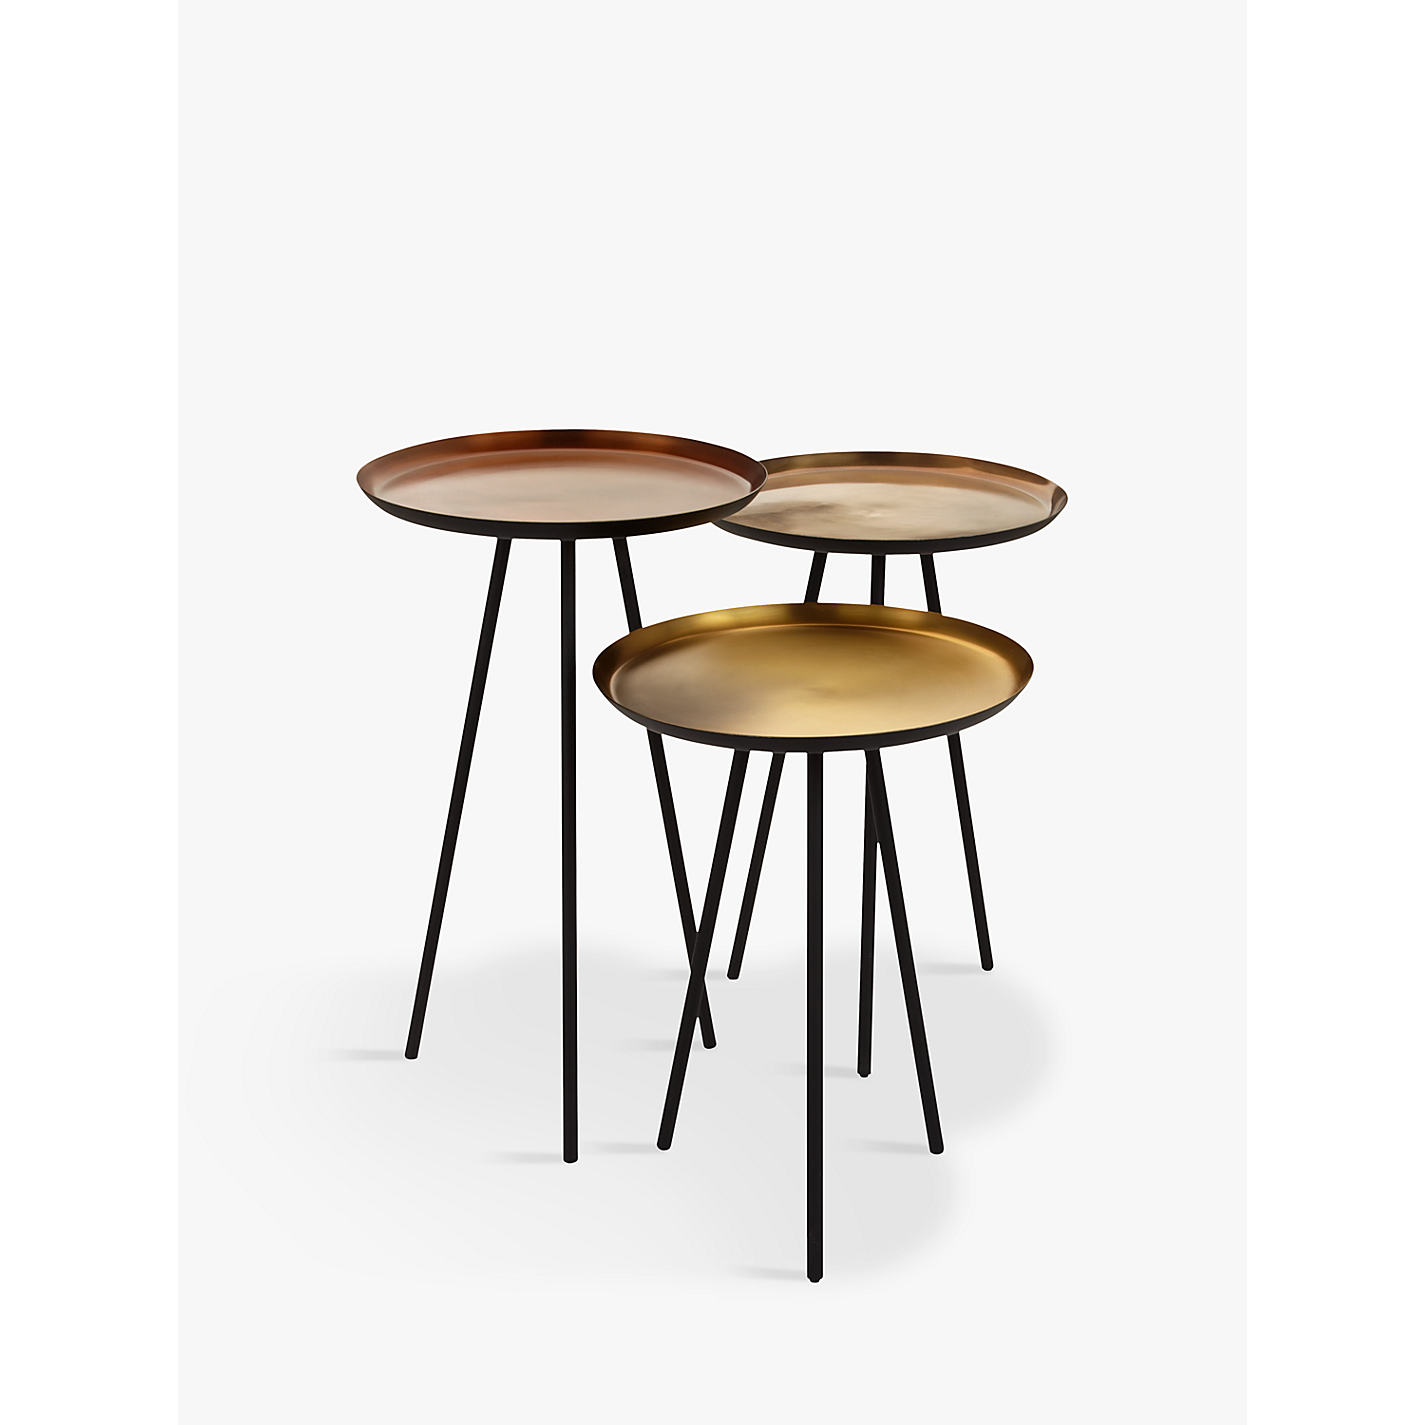 buy content by terence conran accents round side tables set of  bronzeonline . buy content by terence conran accents round side tables set of